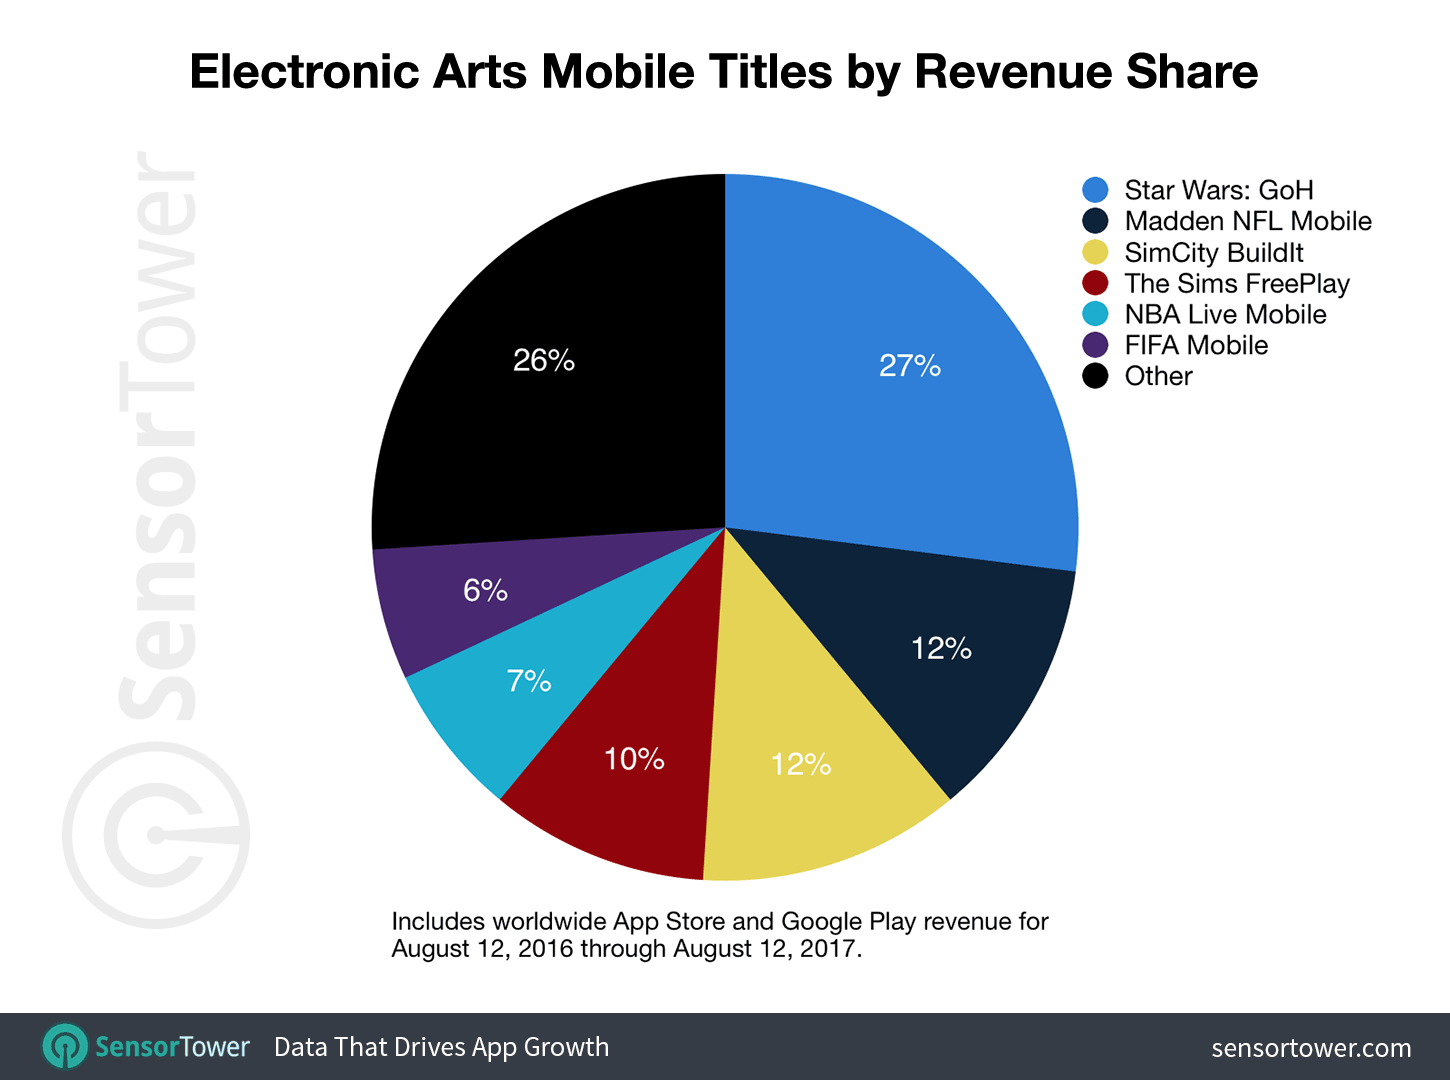 EA is not relying on a single franchise like its main competitors such as King and Supercell.  While Star Wars is by far the biggest hit in EA's portfolio, it still brings only quarter of overall revenue. King's and Supercell's top titles account for over 40 percent of the company's early revenue.